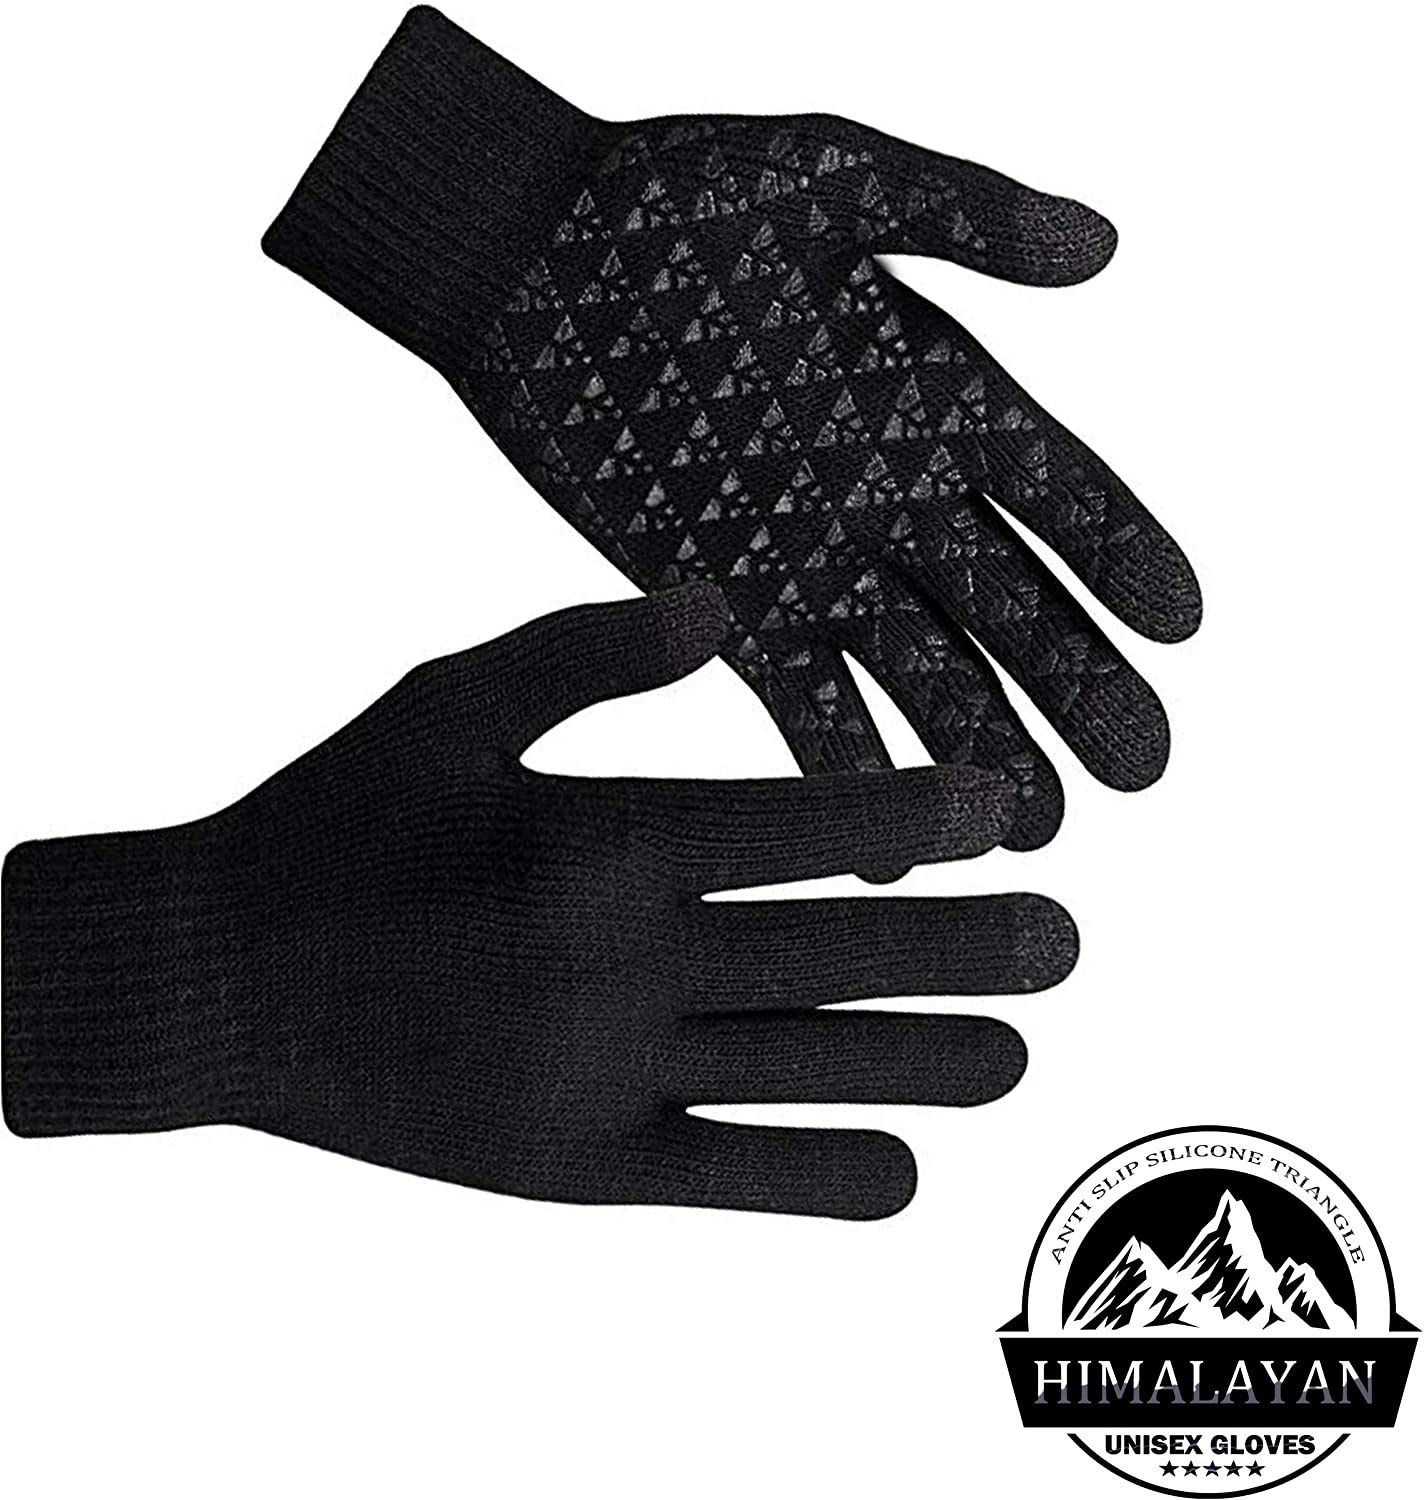 HIMALAYAN TOUCHSCREEN UNISEX GLOVES Windproof and Warm Hand Knit Gloves for Men/'s and Women/'s Small//Medium Winter Knitted Gloves